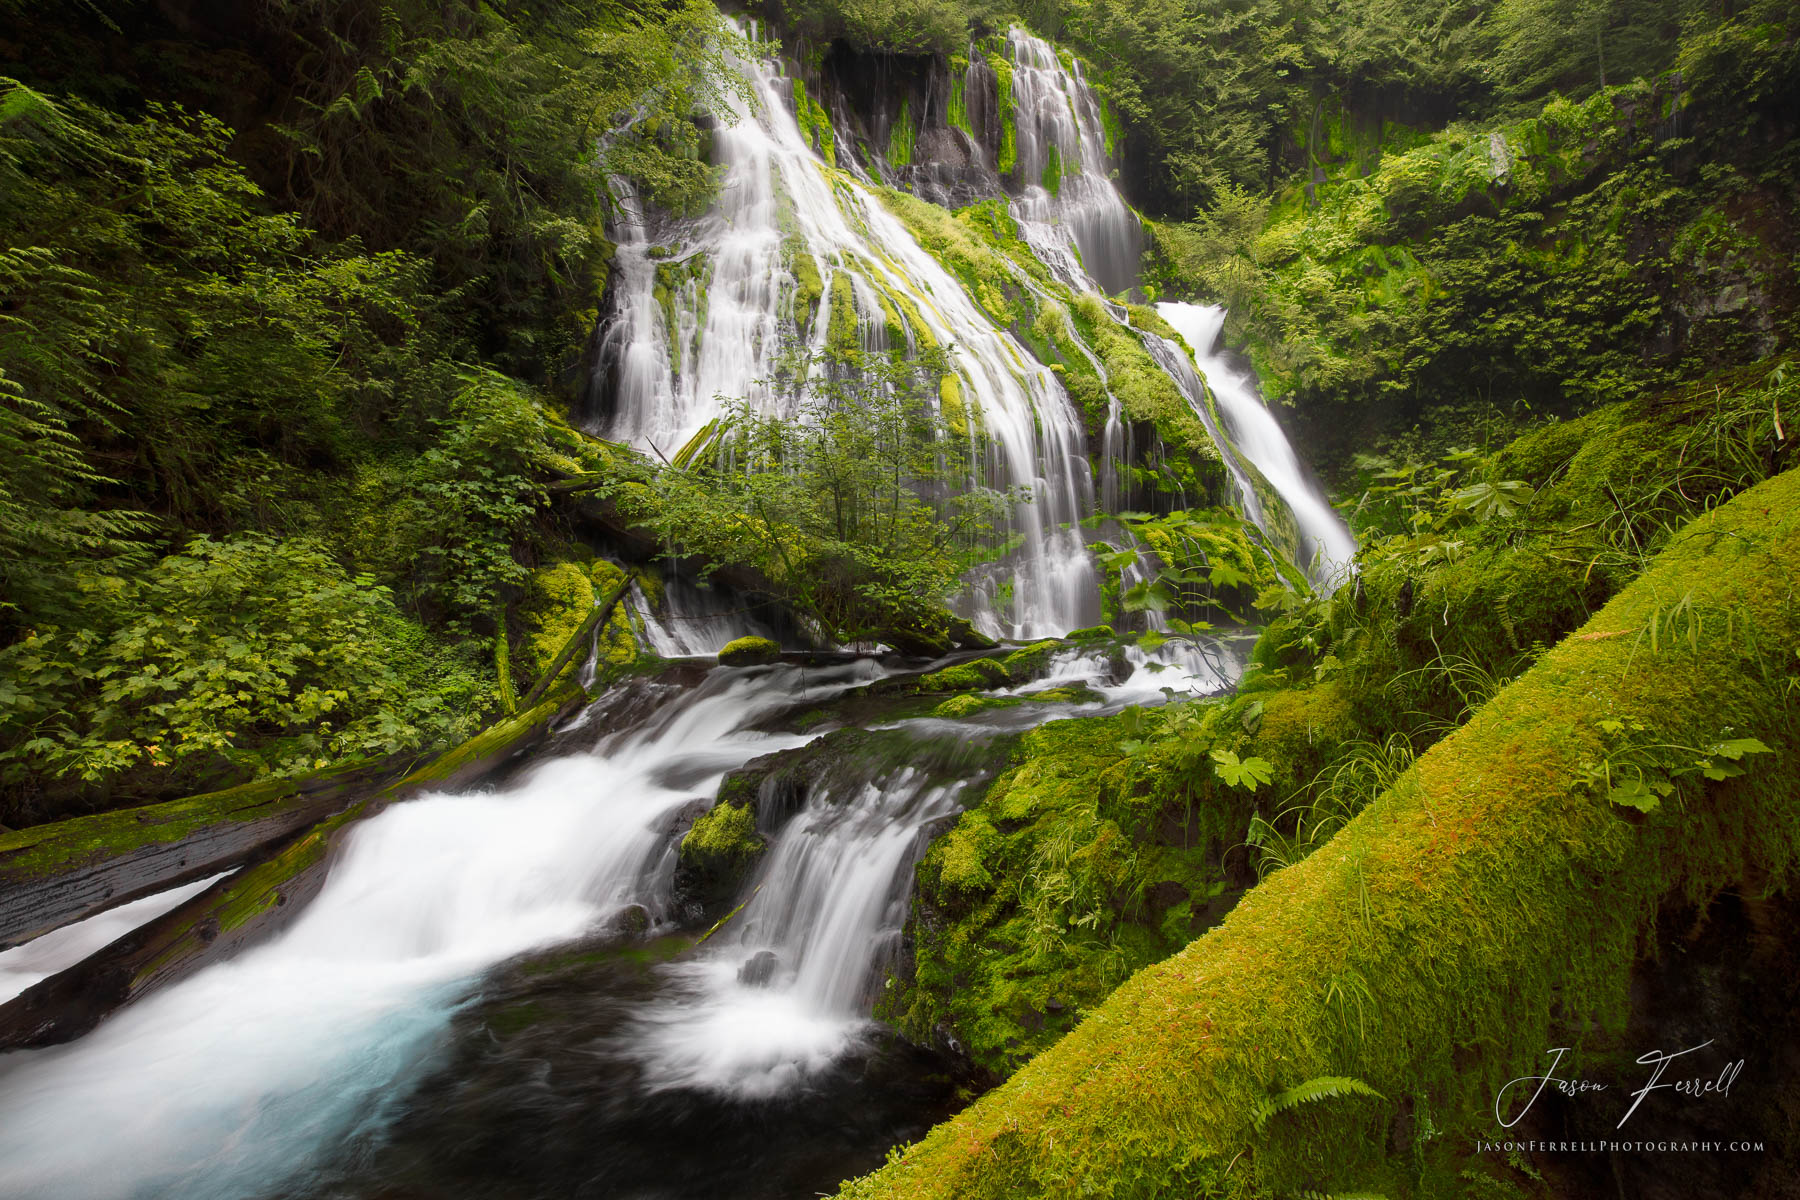 pathers beauty, Gifford Pinchot National Forest, Washington, creek, waterfall, photo